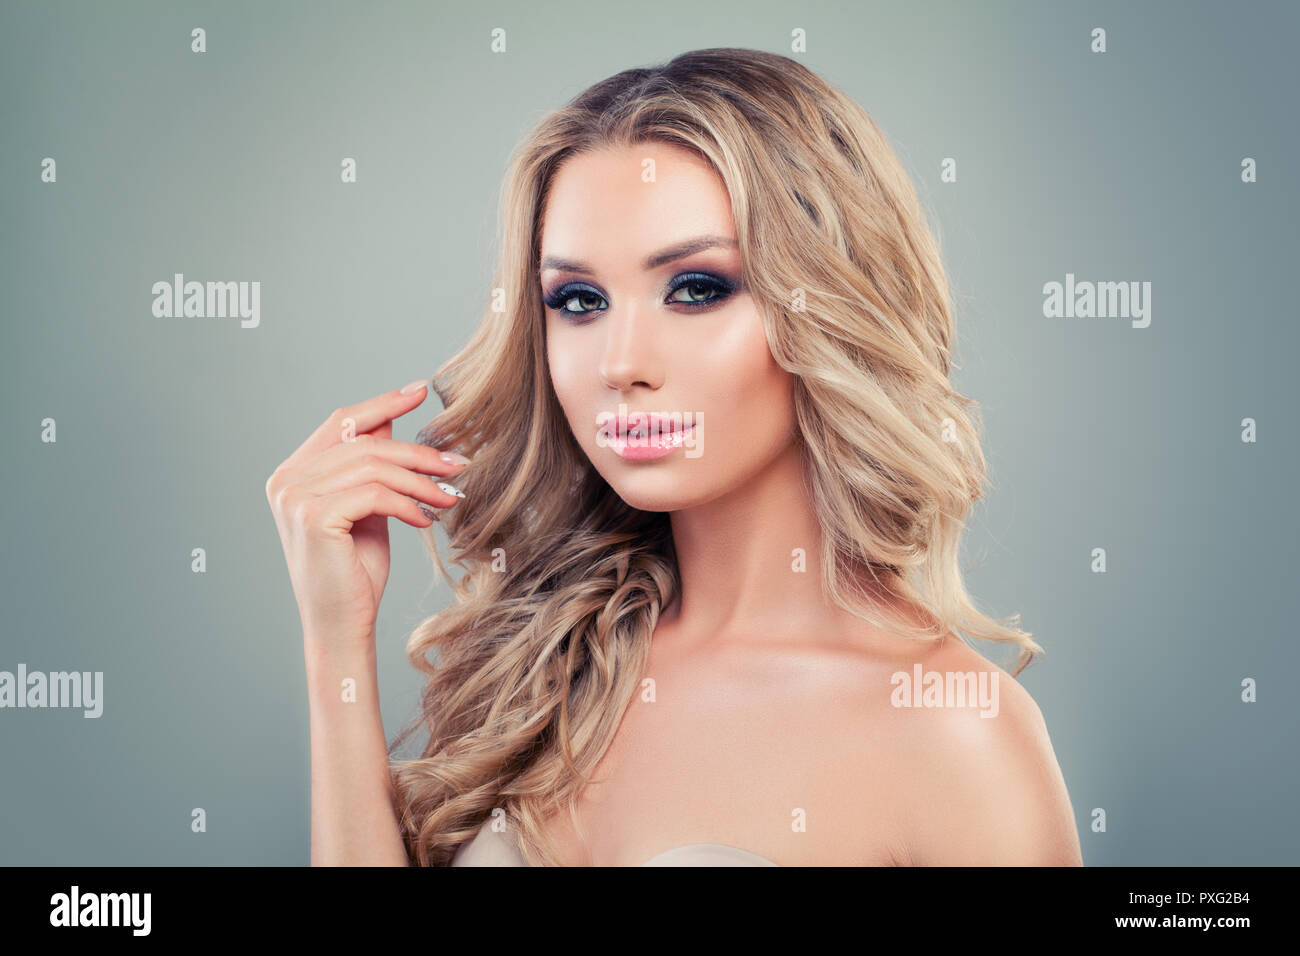 Perfect Blonde Woman With Long Curly Hair And Makeup On Banner Background Stock Photo Alamy